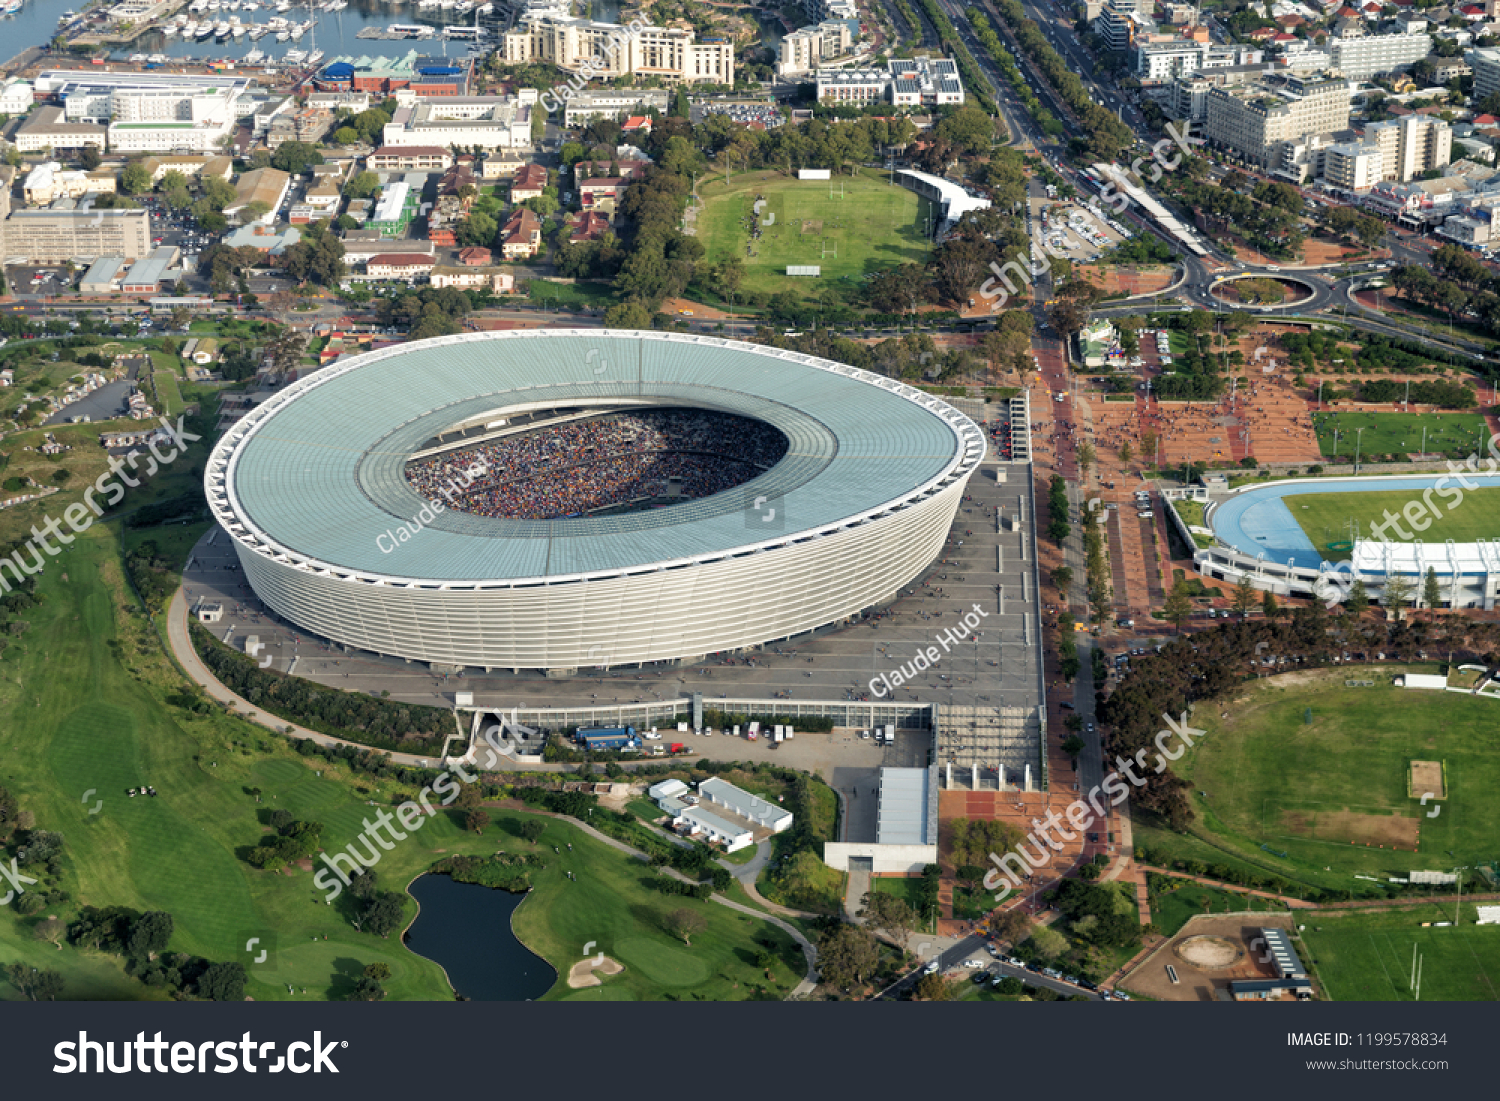 CAPE TOWN, SOUTH AFRICA - SEPTEMBER 15, 2018: Aerial view of Cape Town Stadium with spectators during a soccer game. The stadium was built in 2010, on the Green Point Common, for the FIFA World Cup.